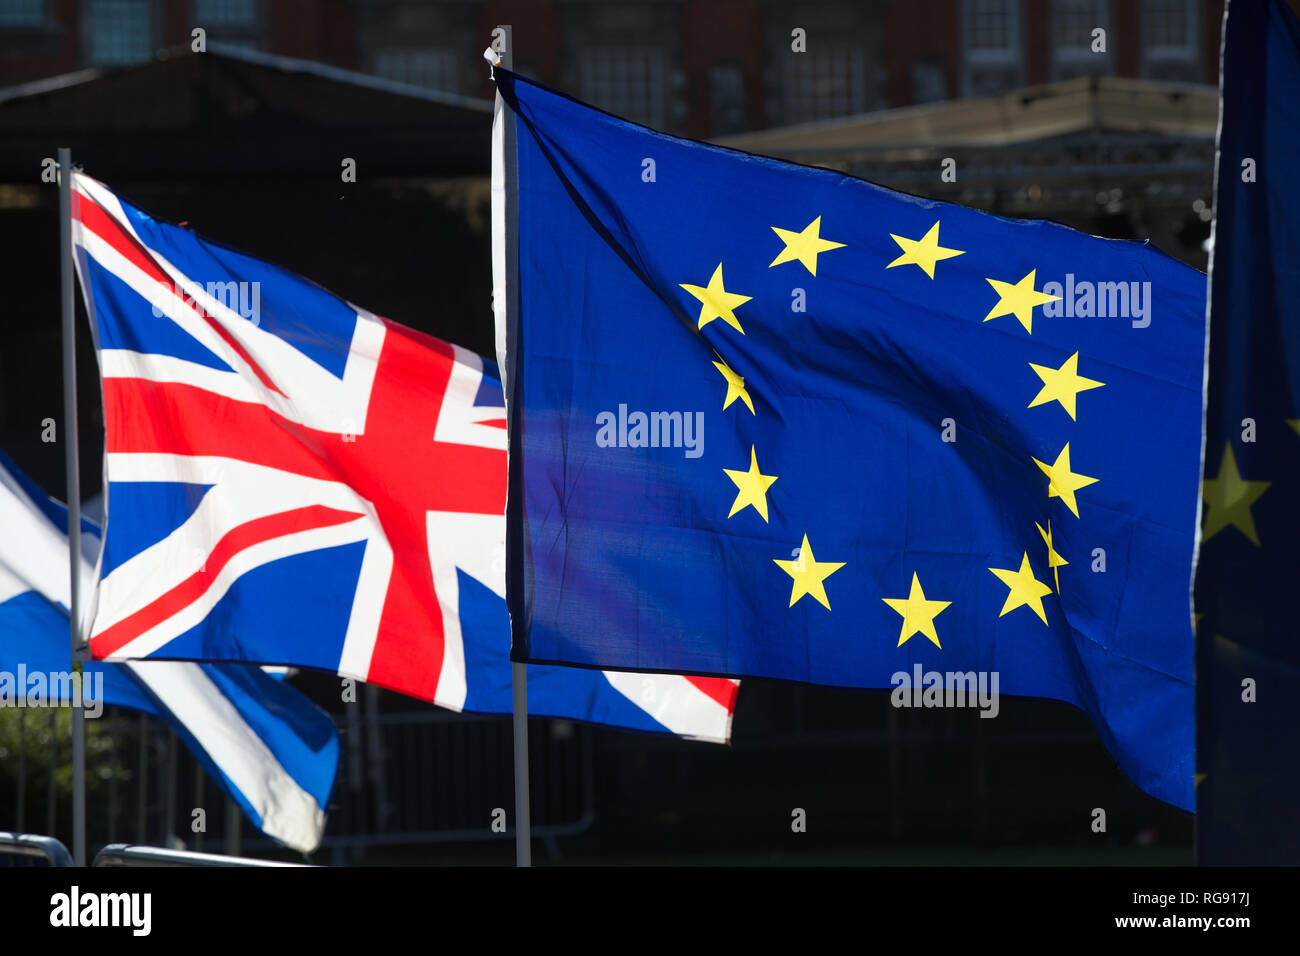 Anti-Brexit campaigners wave Union and European Union flags outside the Houses of Parliament, London. - Stock Image